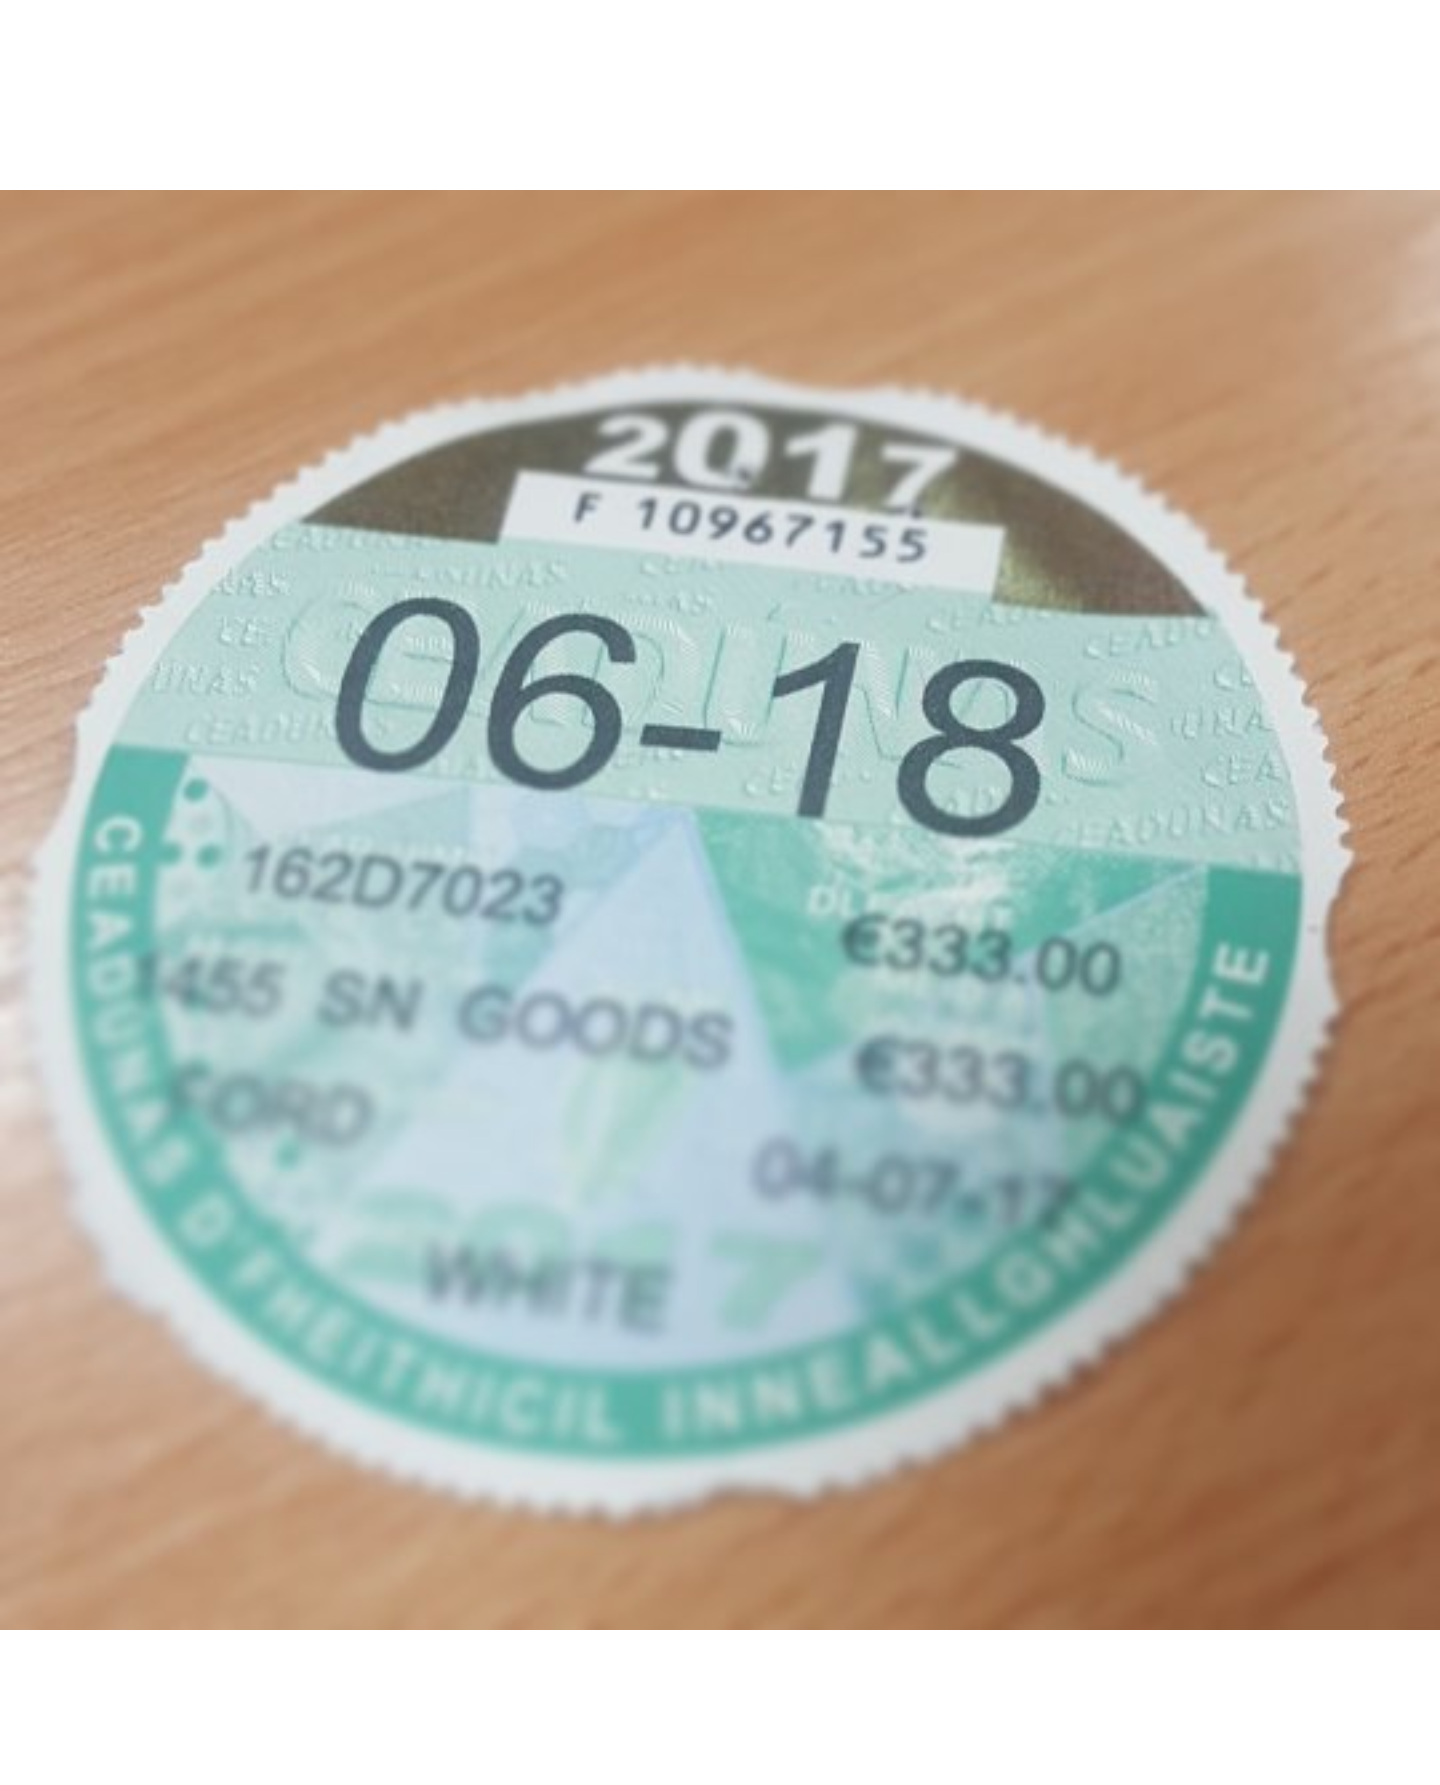 HB Dennis leasing - Replacement Tax Disc